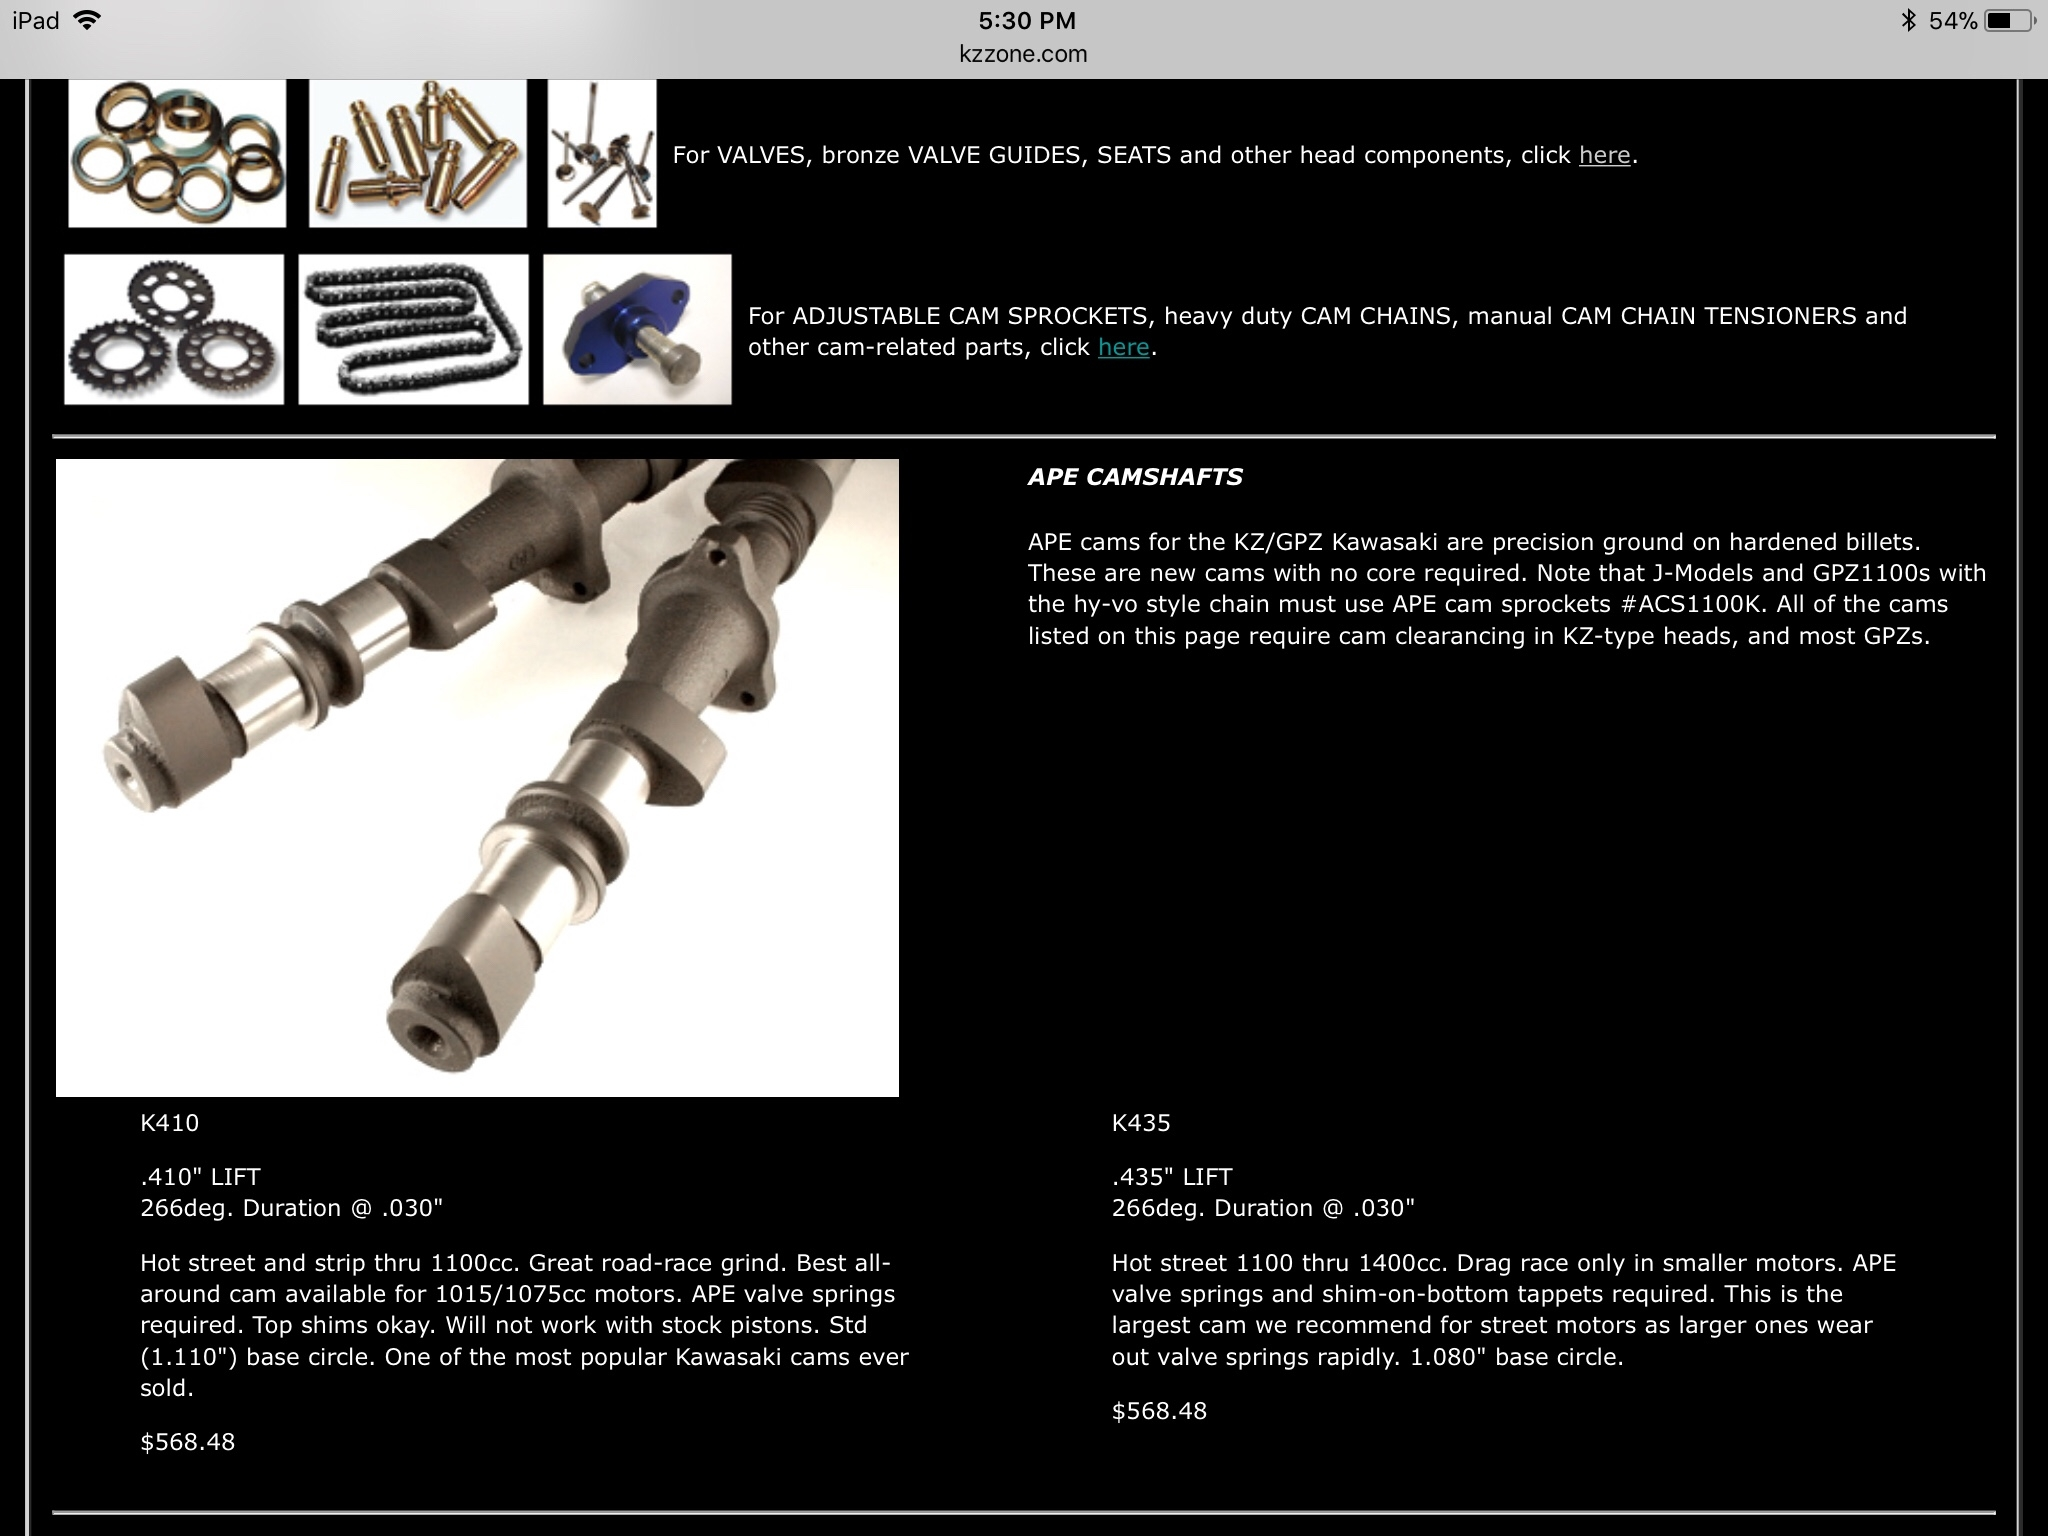 KZ camshaft info - Chin on the Tank – Motorcycle stuff in